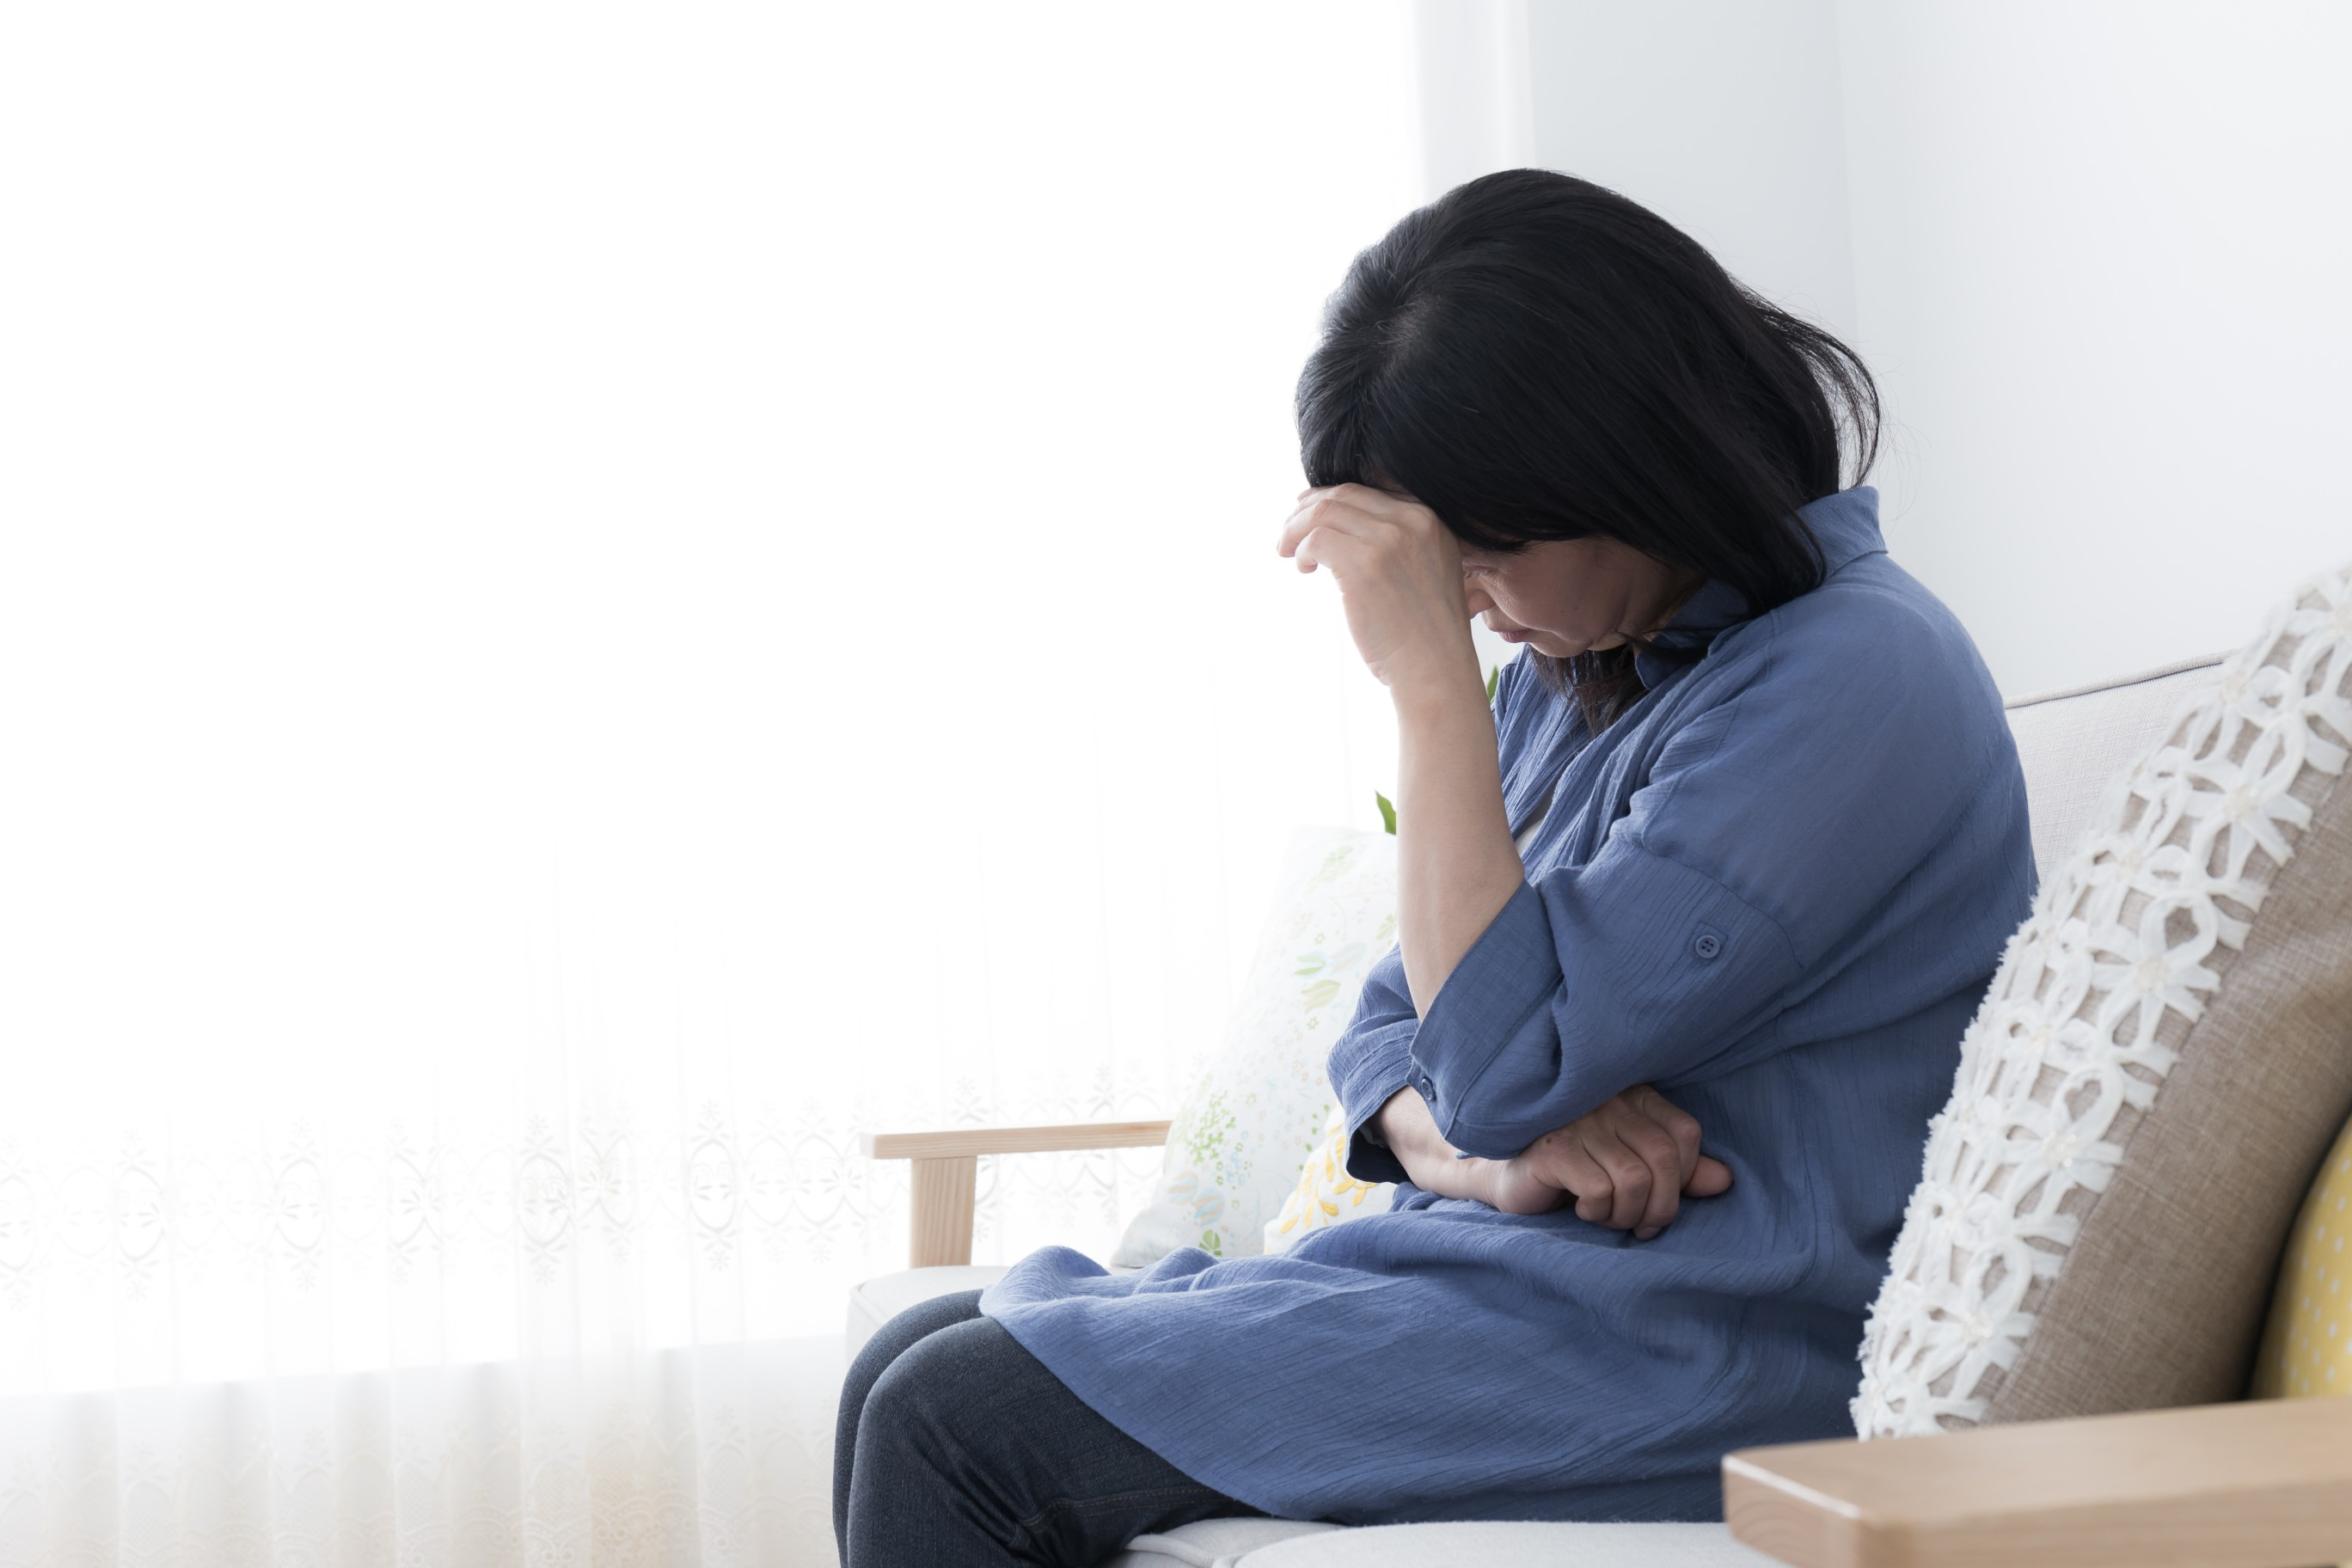 The Midlife Manual: Common Problems Associated With Menopause